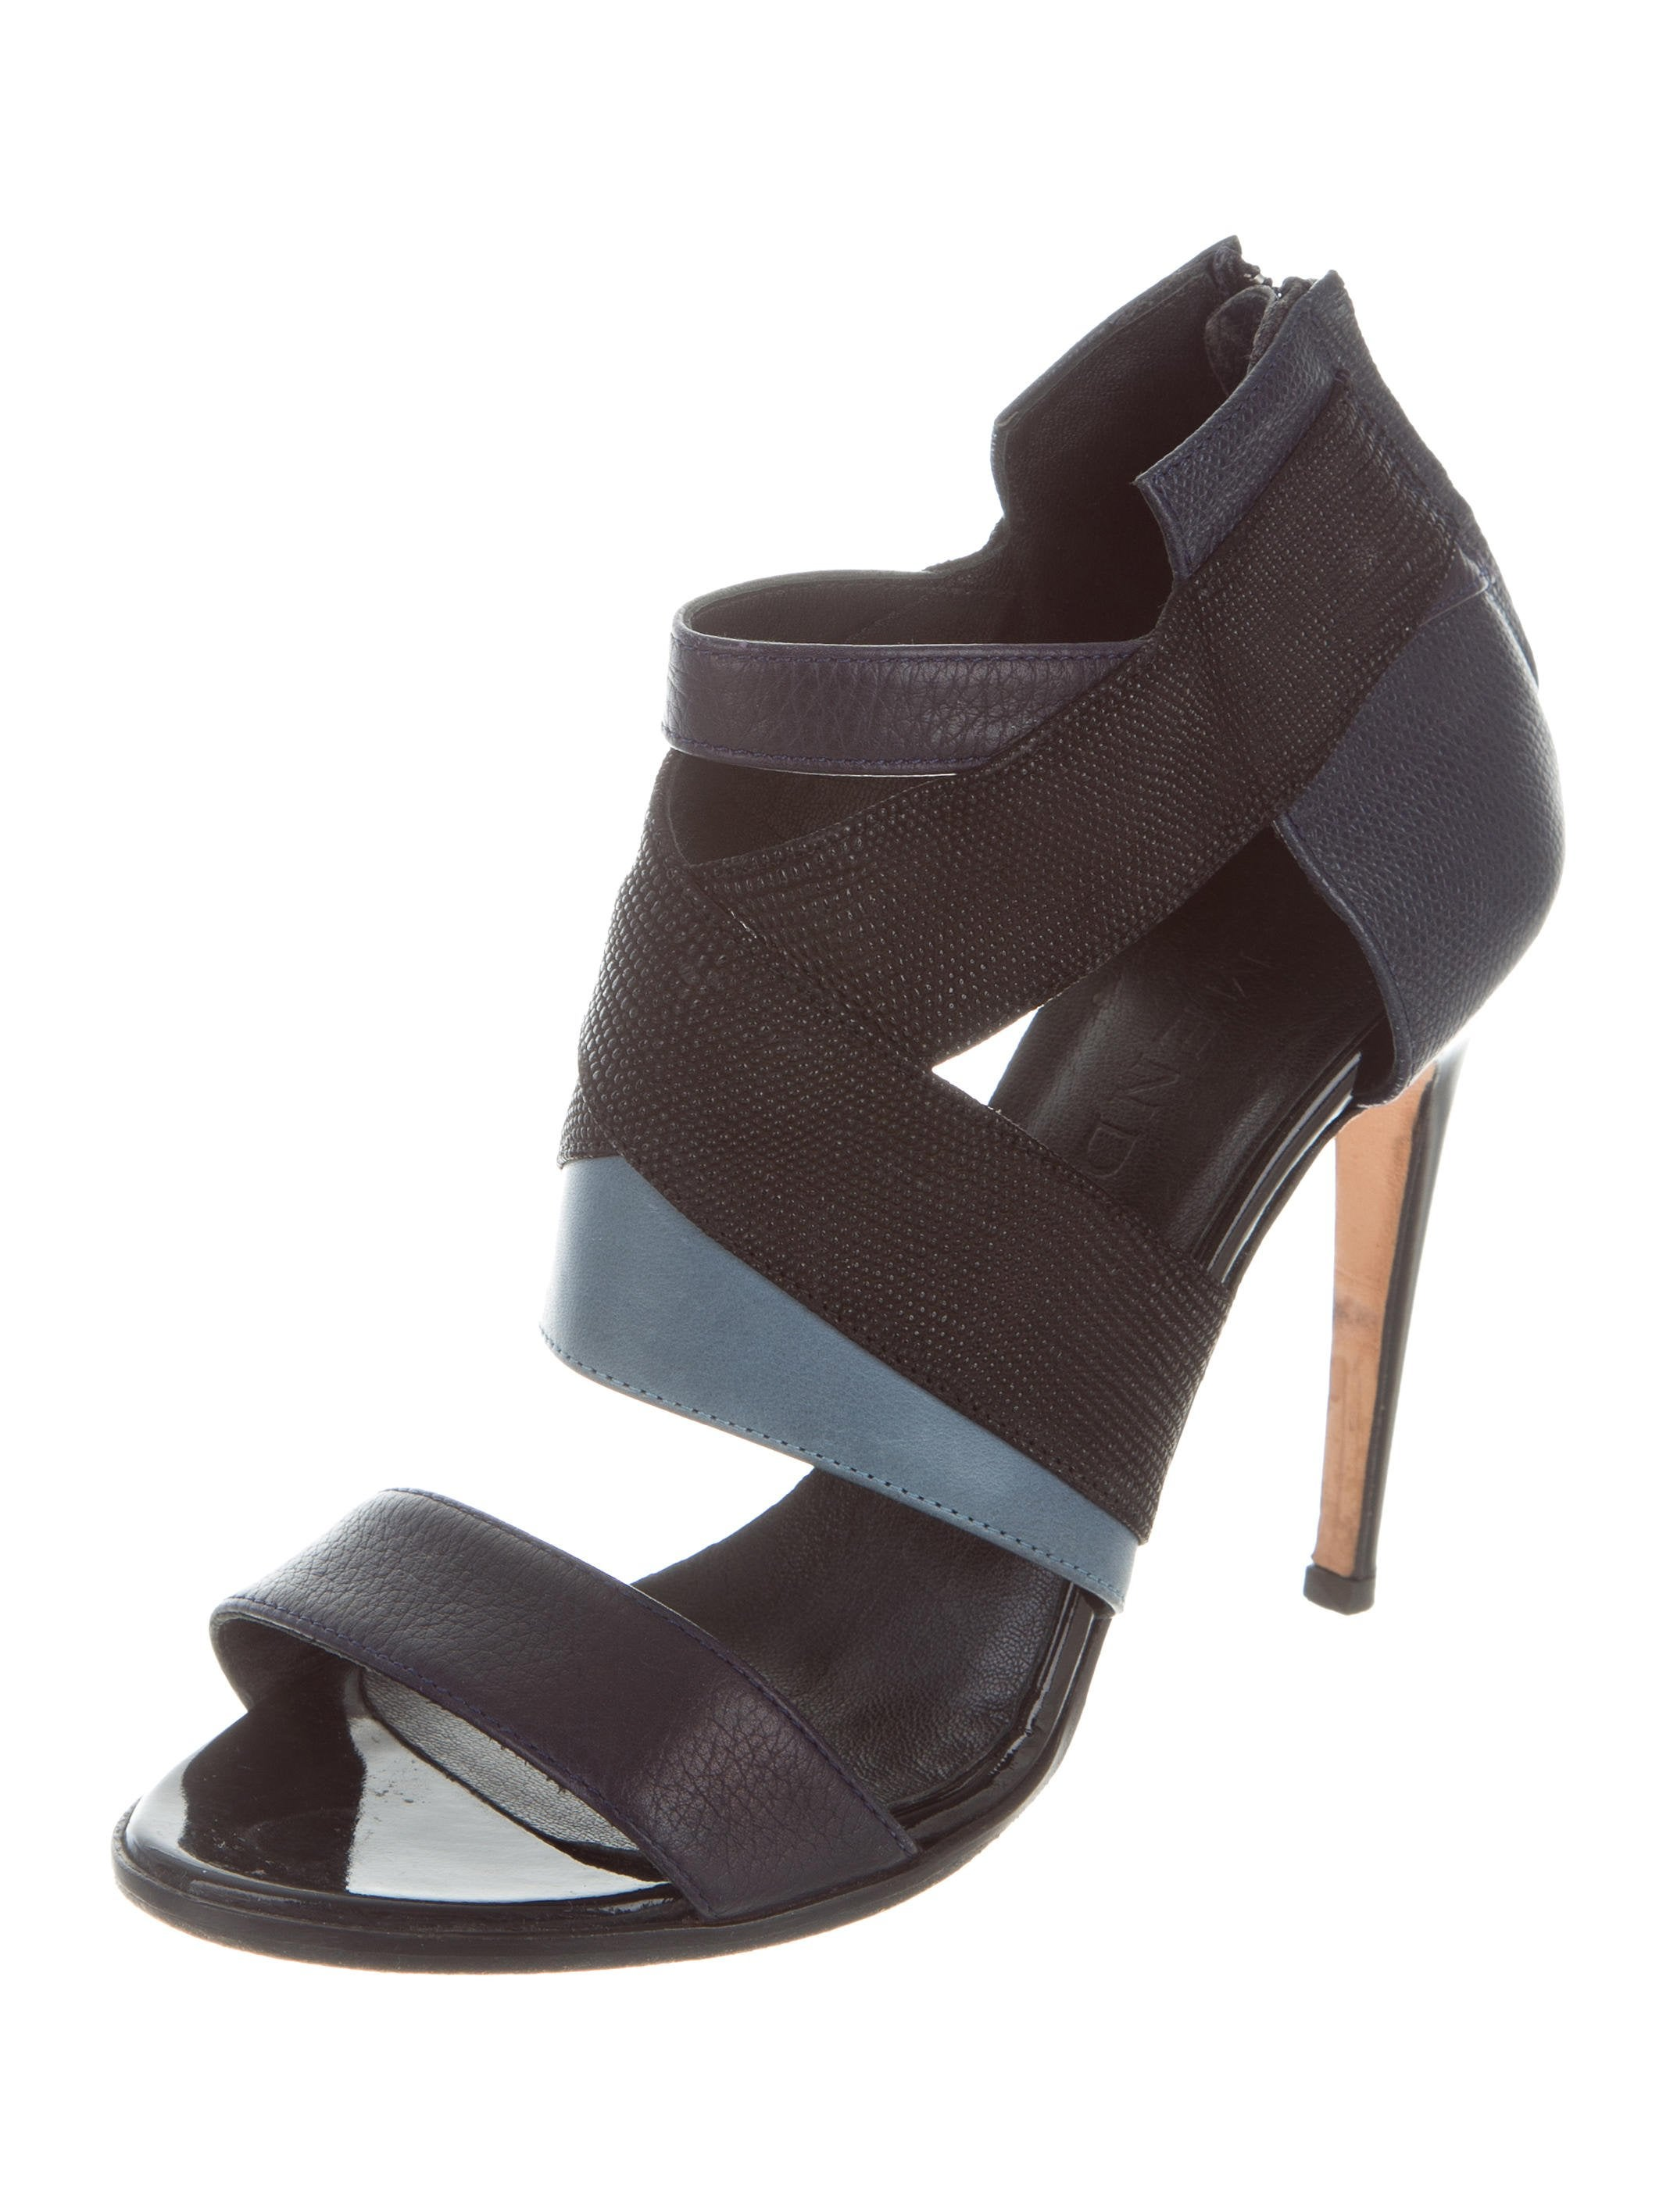 discount looking for fashionable cheap online J. Mendel Leather Caged Sandals low shipping fee wholesale price sale online cheap sale browse PgfsM4M